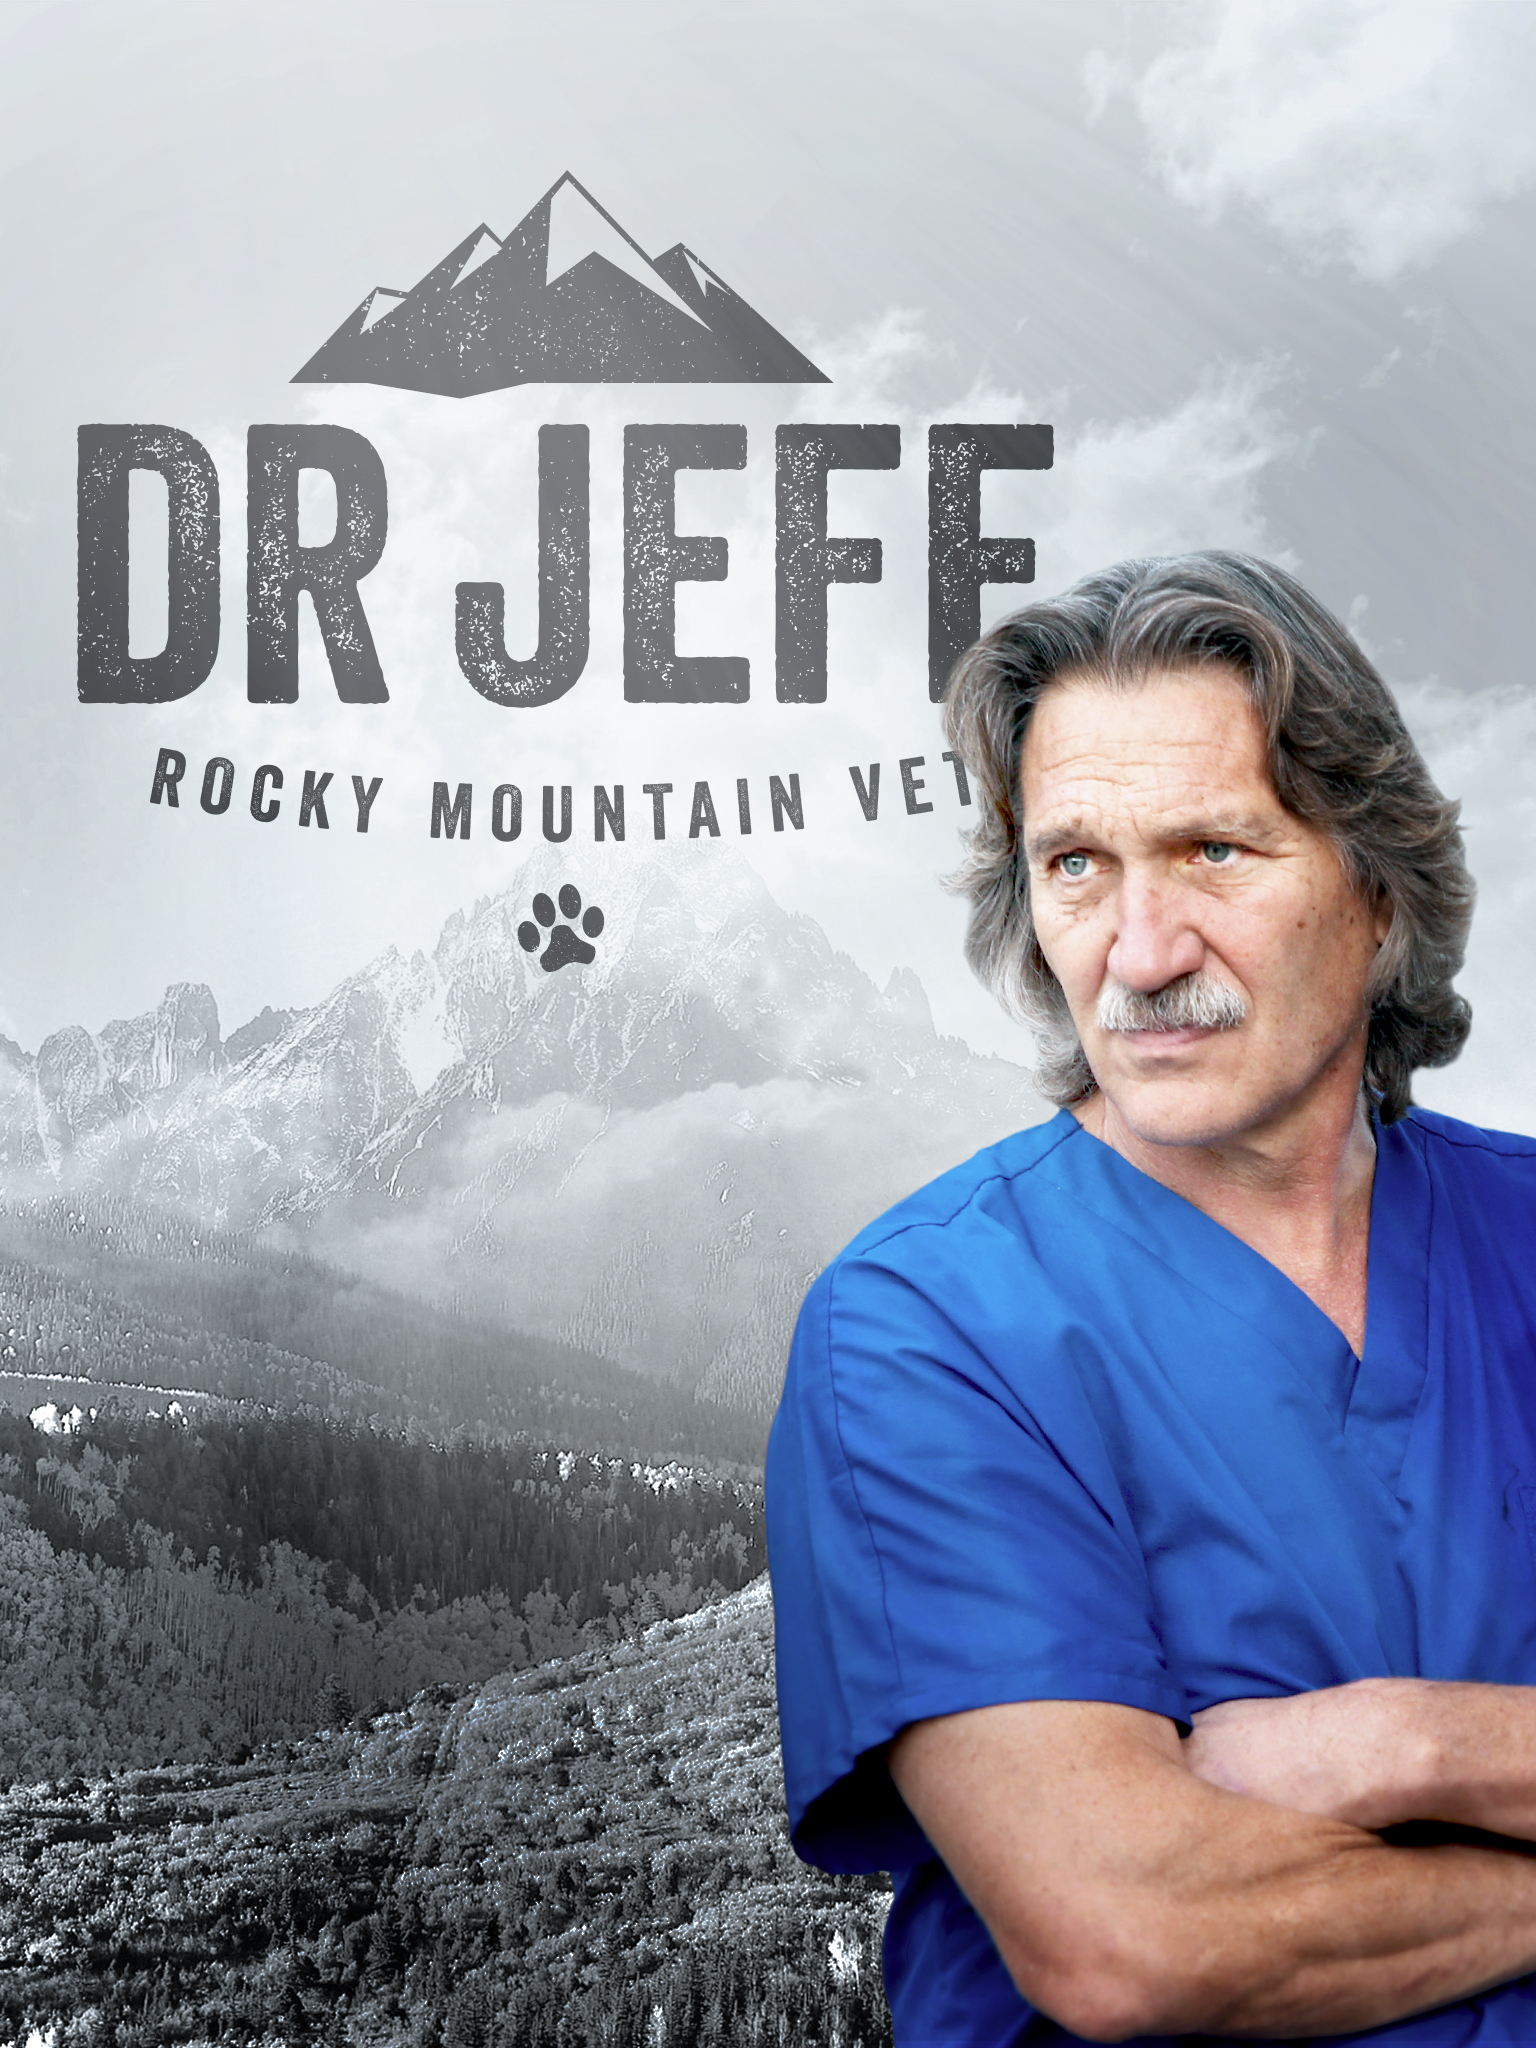 Dr. Jeff: Rocky Mountain Vet - Season 7 Episode 9 - Gator Tale